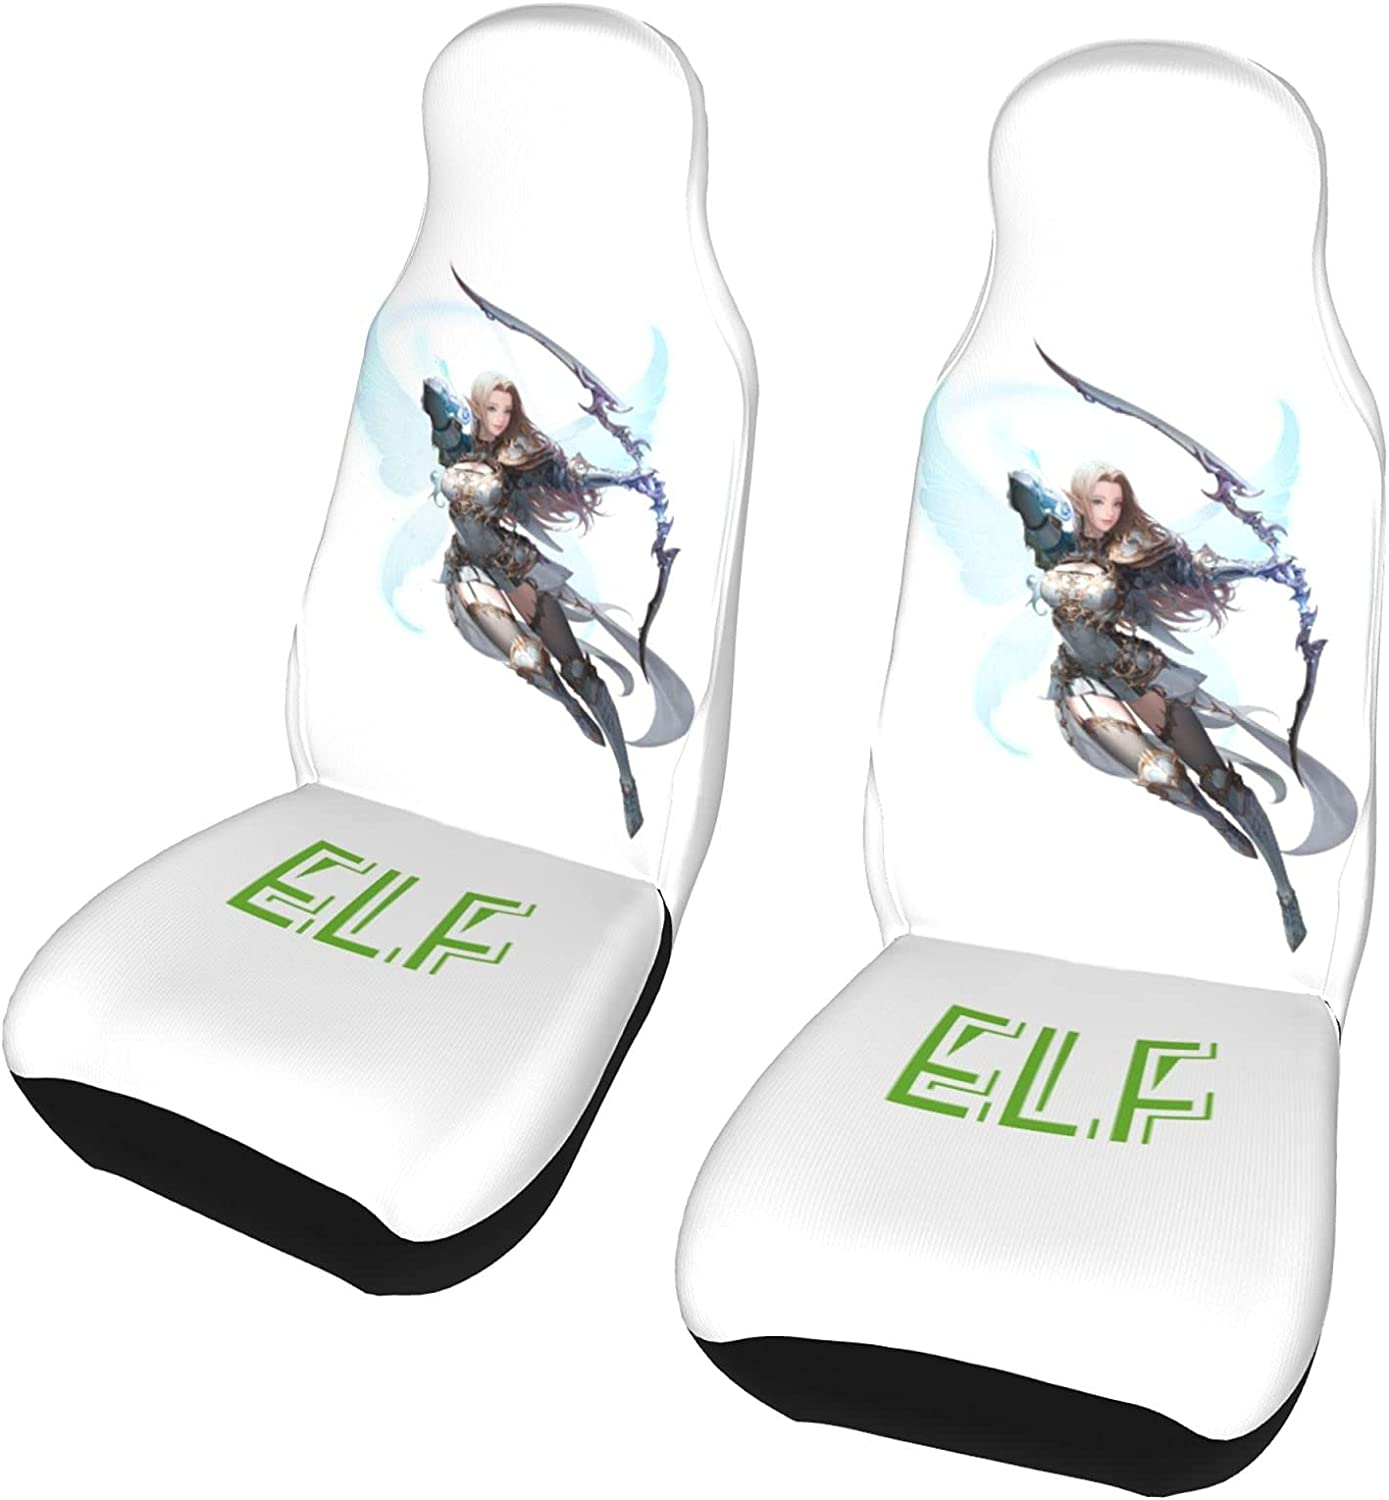 PictetW low-pricing Anime Elf Archer Car Covers Cozy Seat Superior Universal Sear